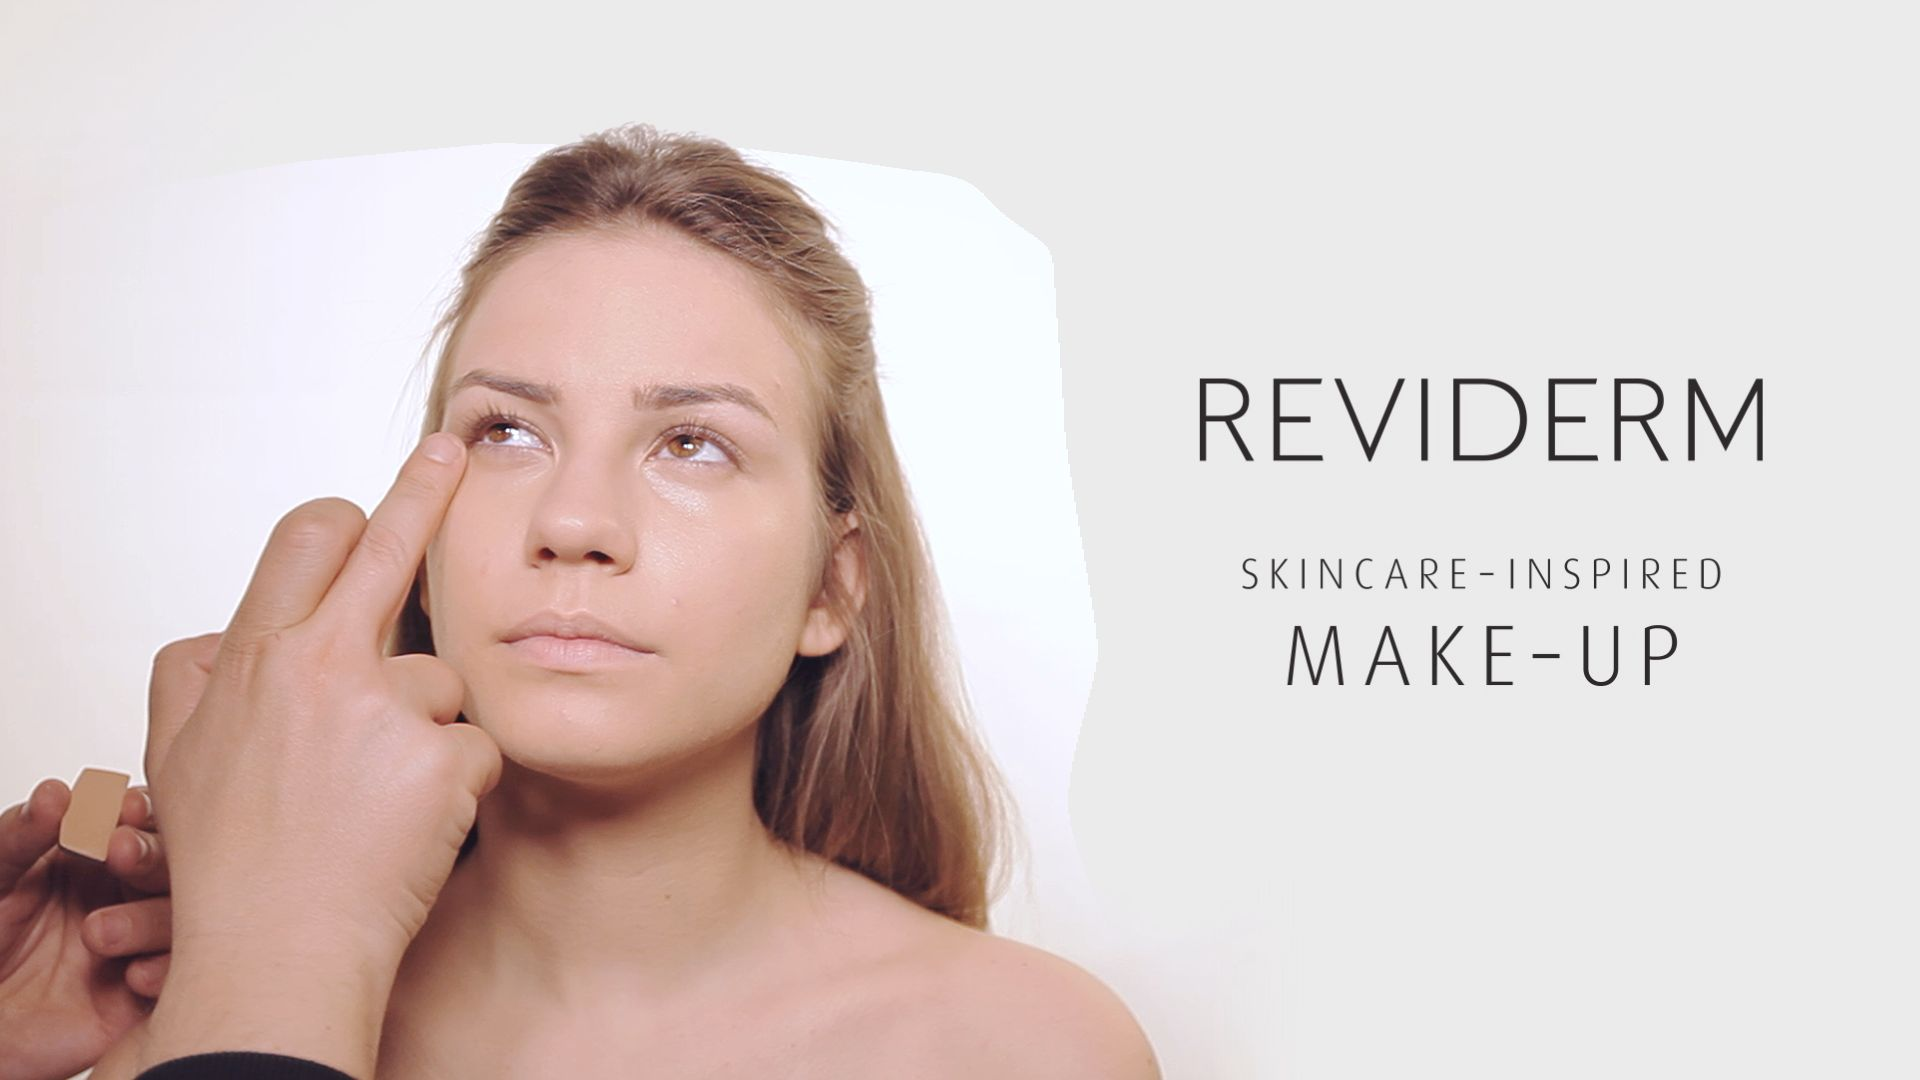 Reviderm make up minute 9